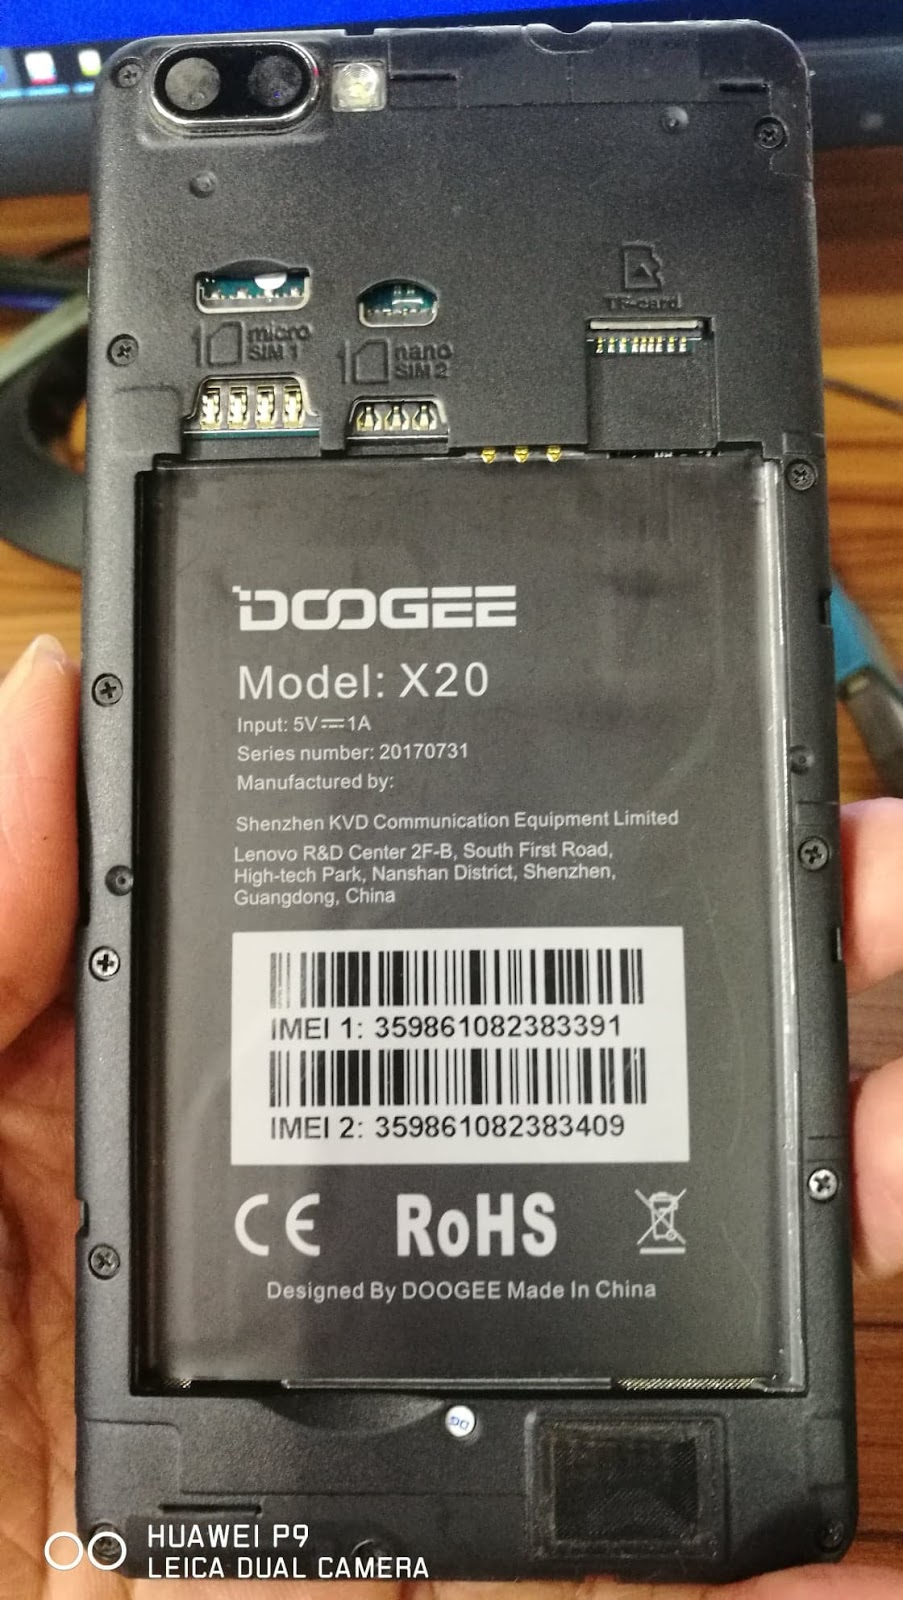 DOOGEE X20 FLASH FILE FIRMWARE MT6580 7 0 100% TESTED FILE BY MAMUN